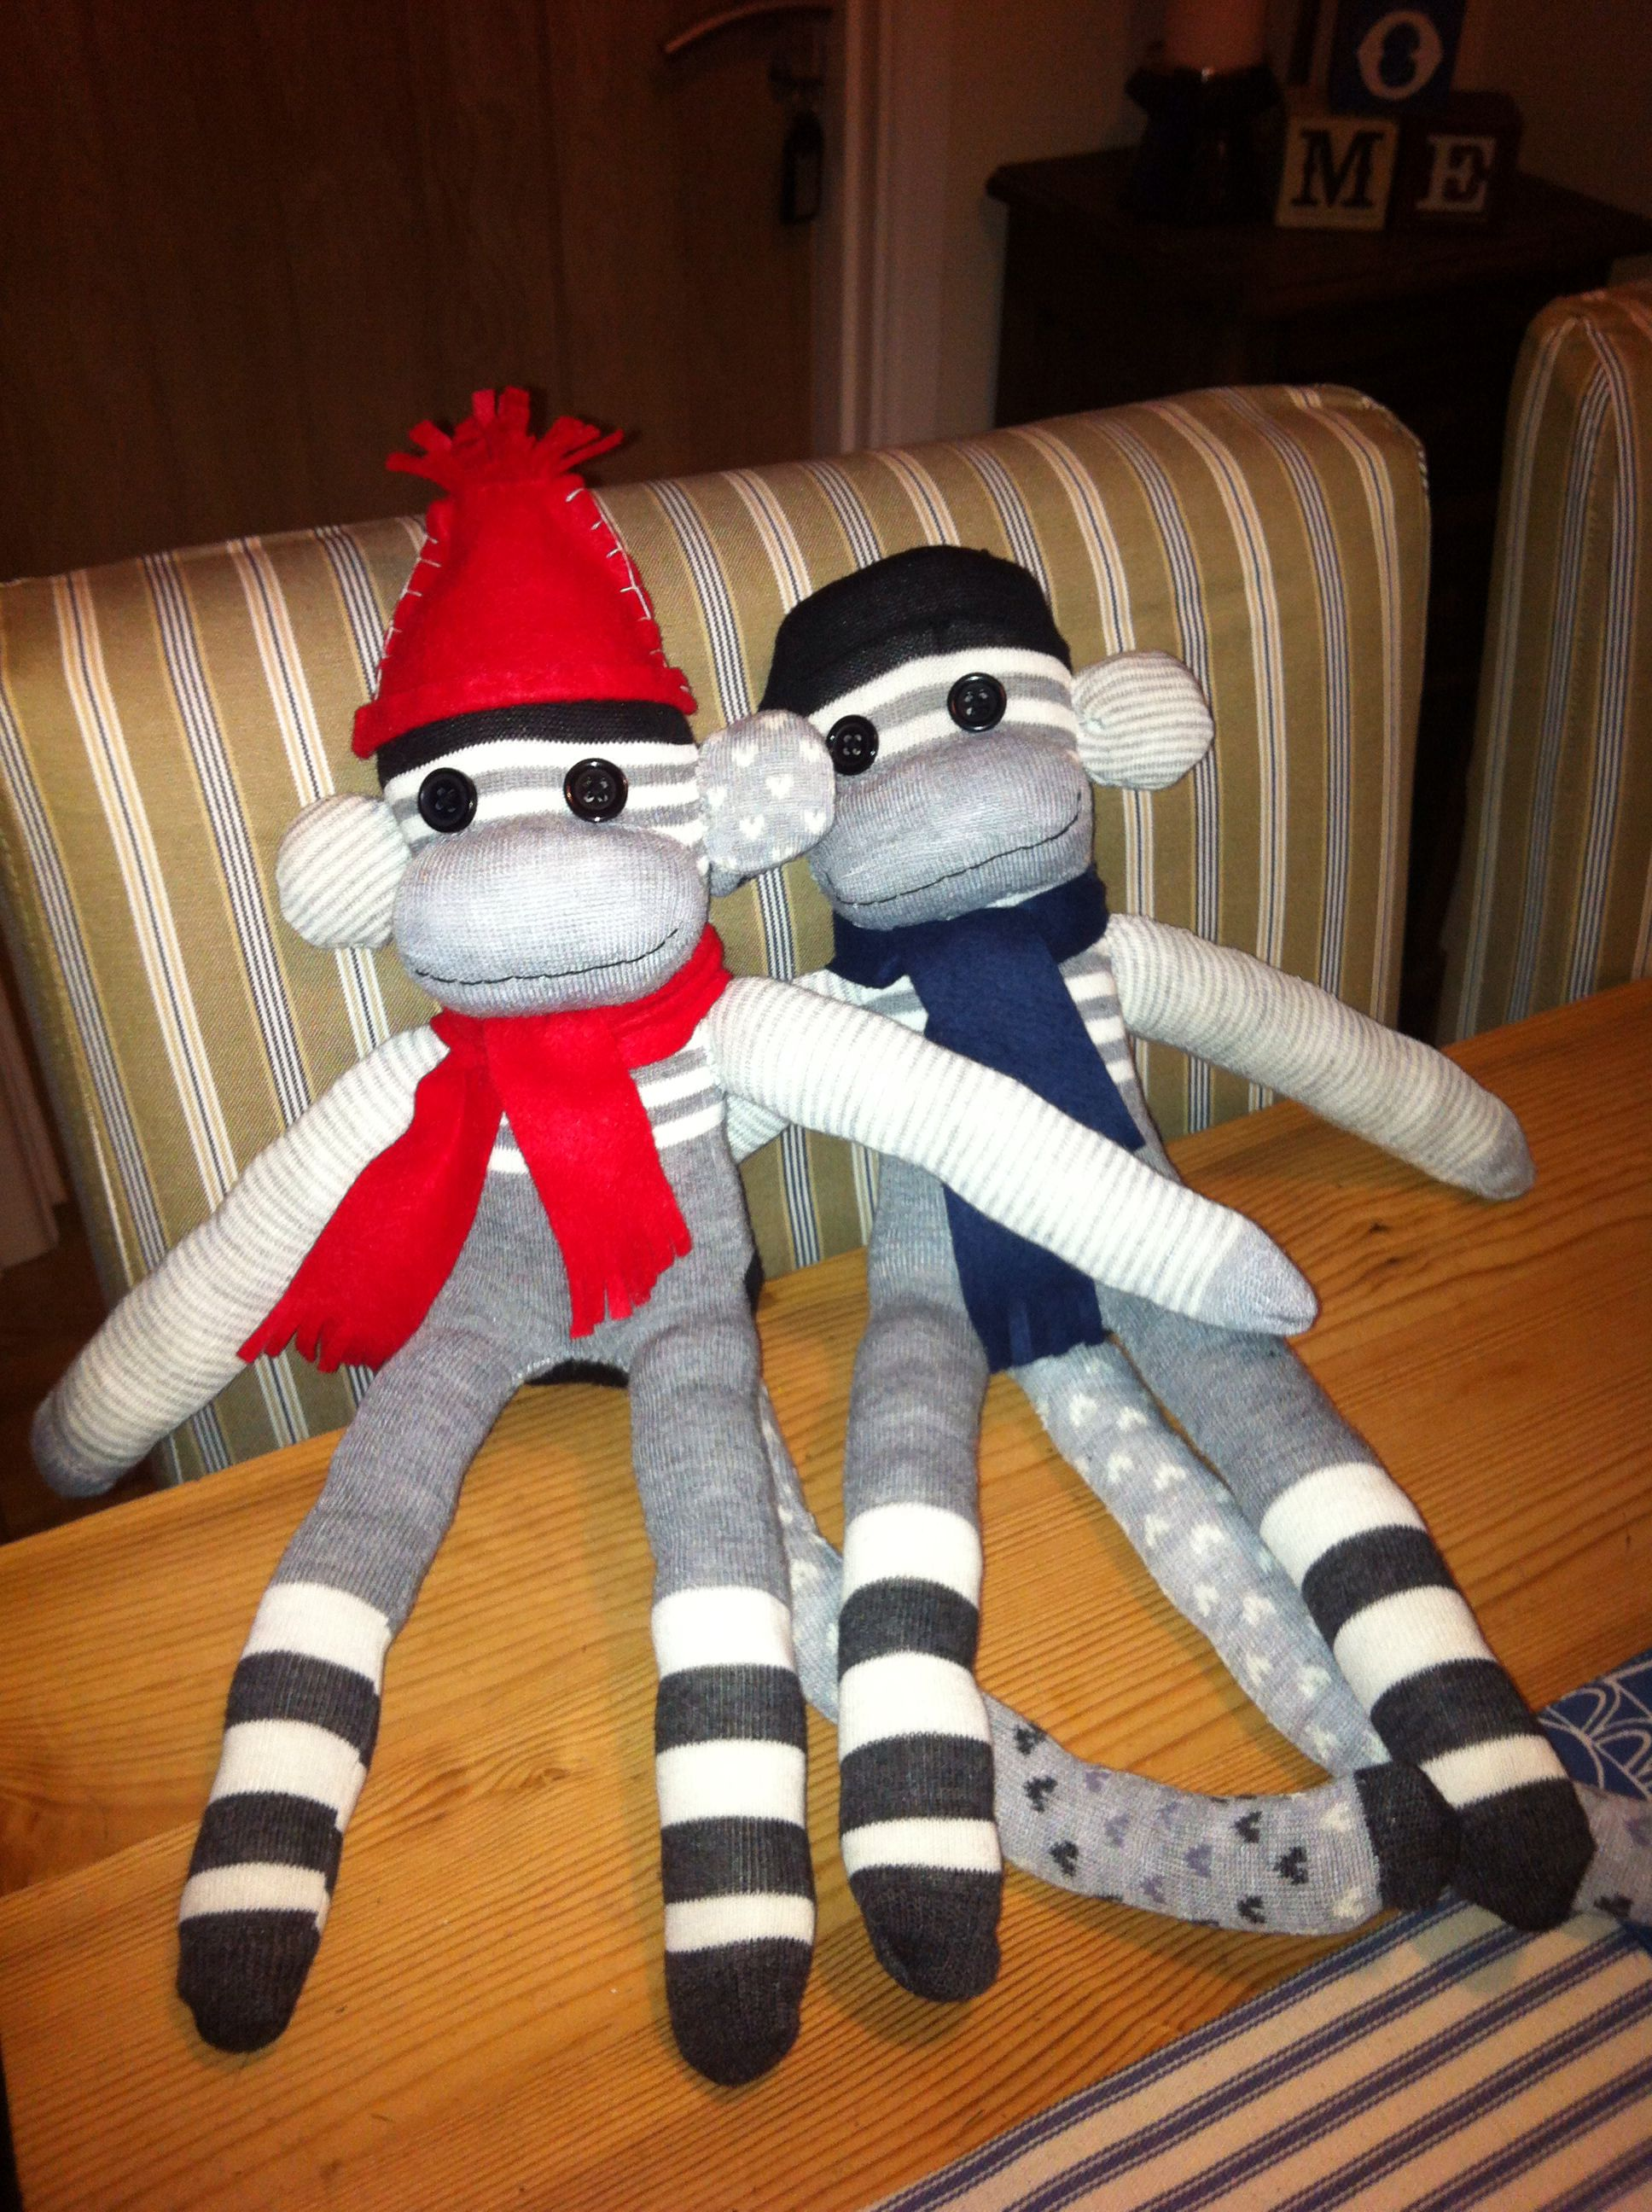 My first attempt at making sock monkeys for the boys. Hats and scarfs made from felt to keep them warm.